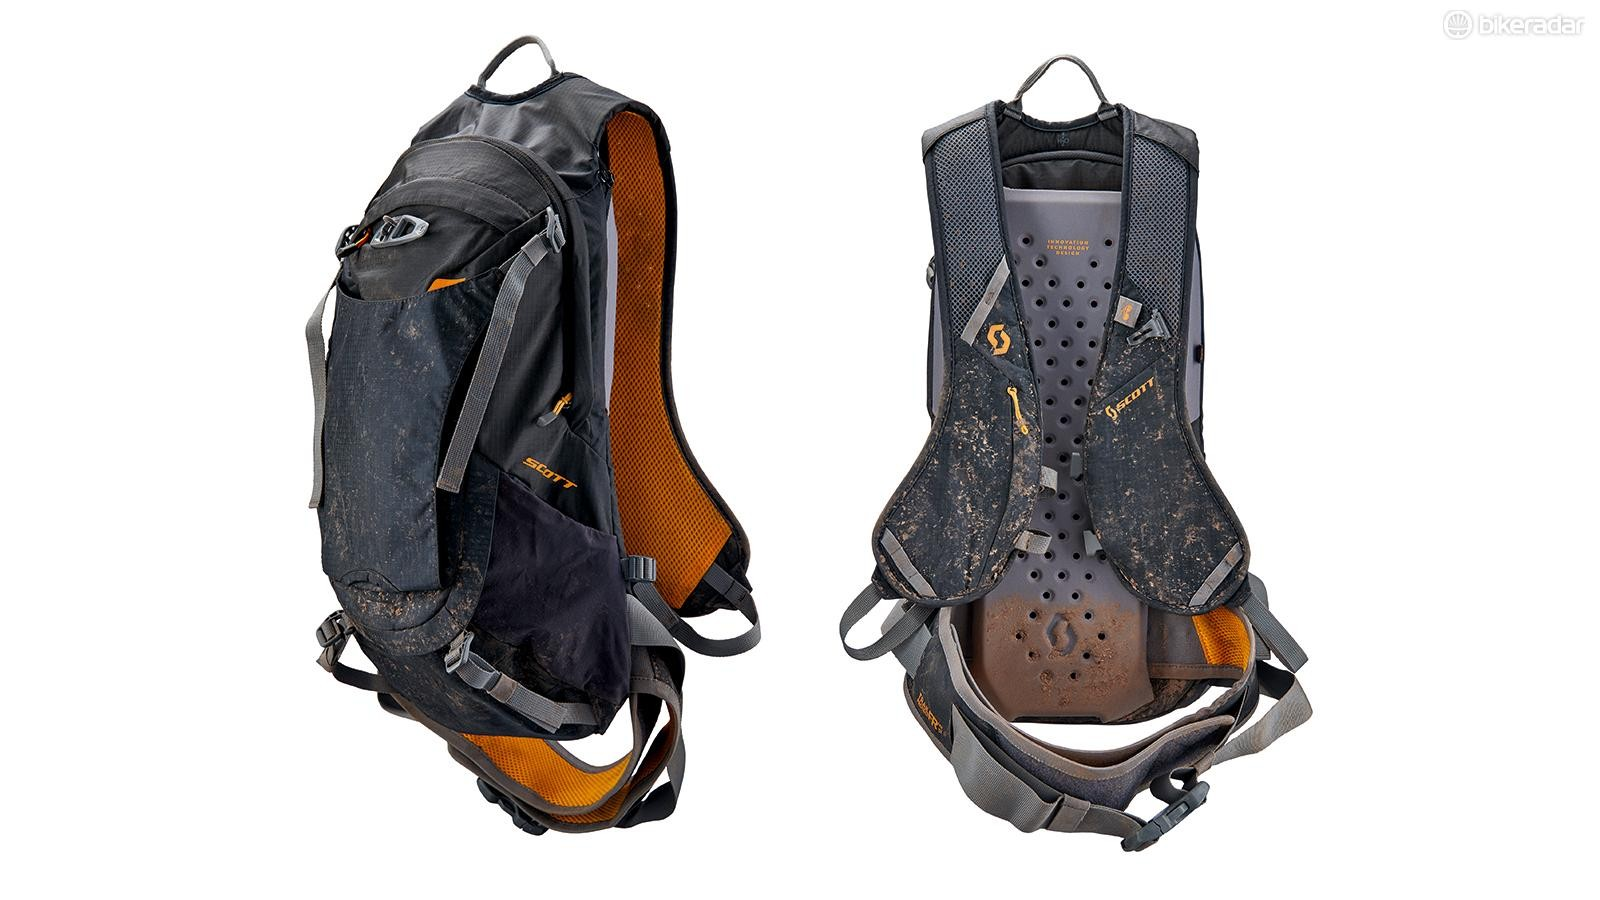 Scott Trail Protect FR' 12 is well featured but came up frustratingly short on our tall tester